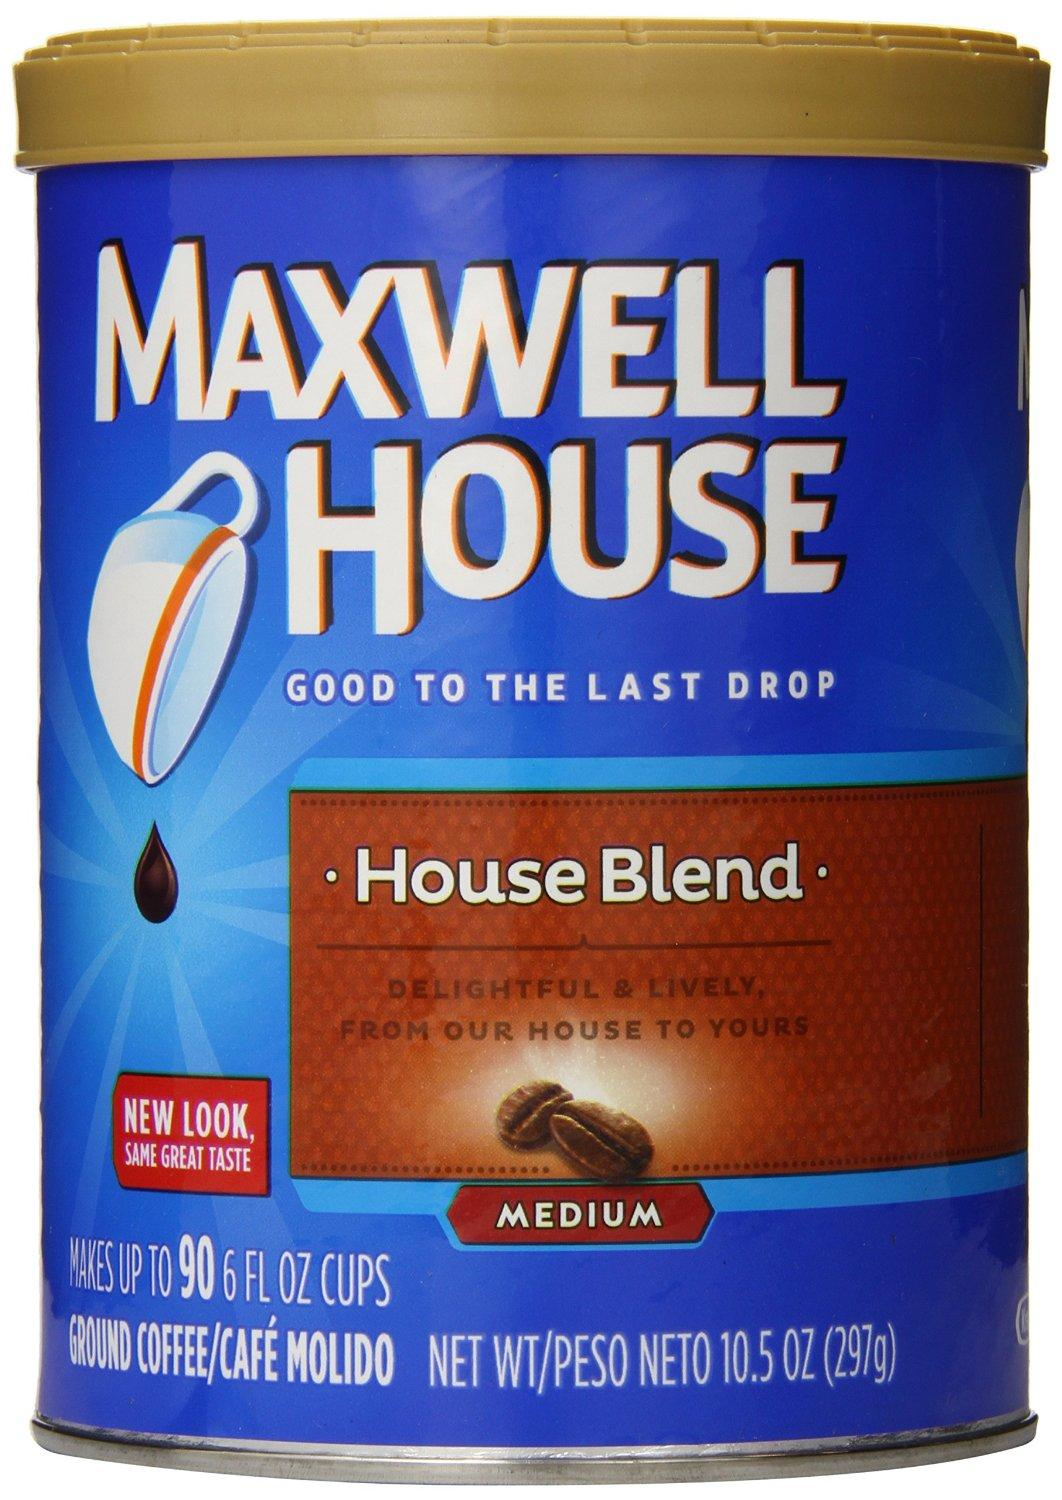 $1.65 Maxwell House Ground Coffee, House Blend, 10.5 Ounce